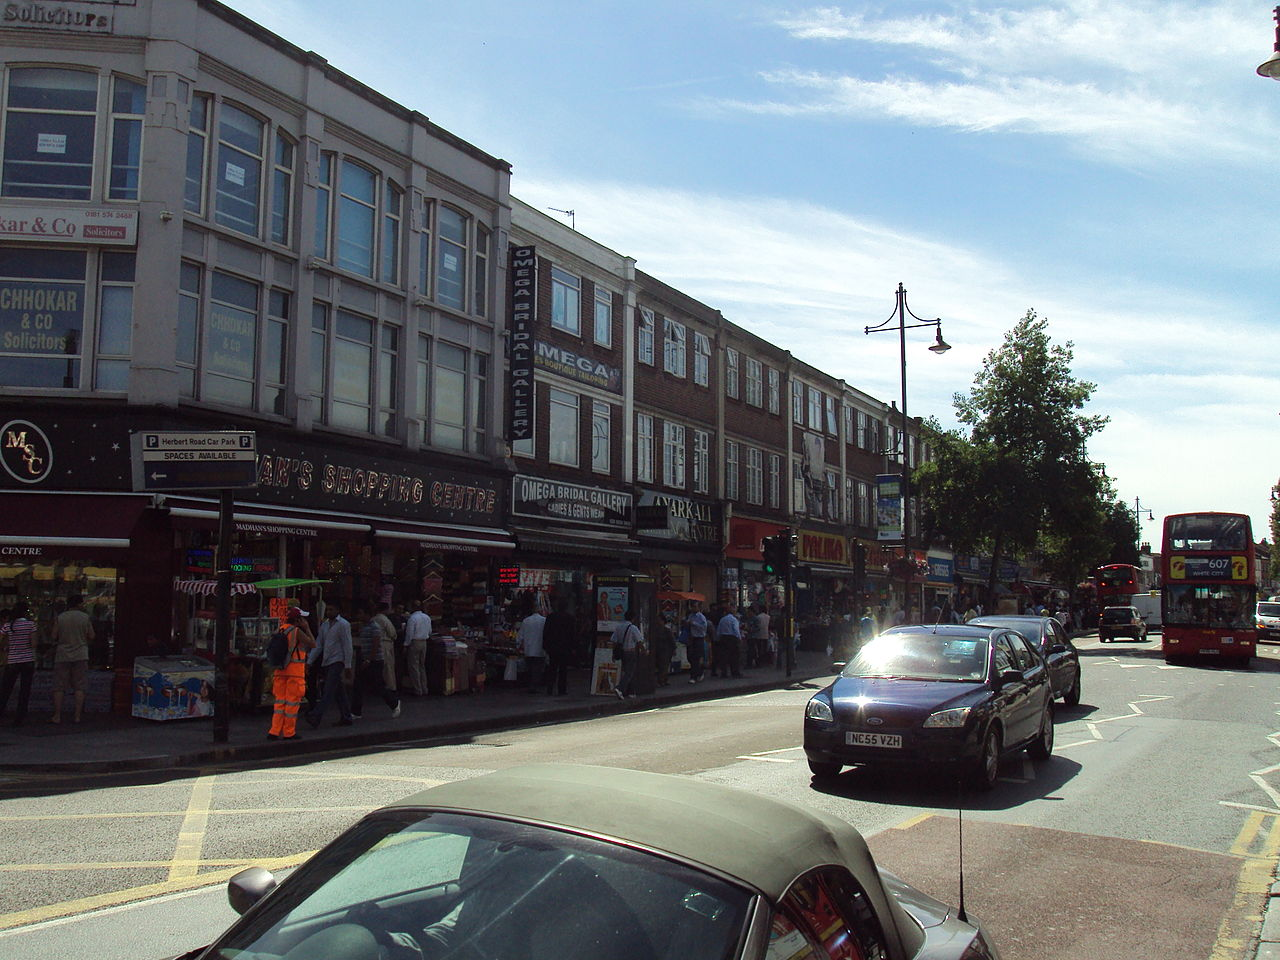 southall dating Rent a car in southall exceptional customer service and great car hire rates from  enterprise-rent-a-car.